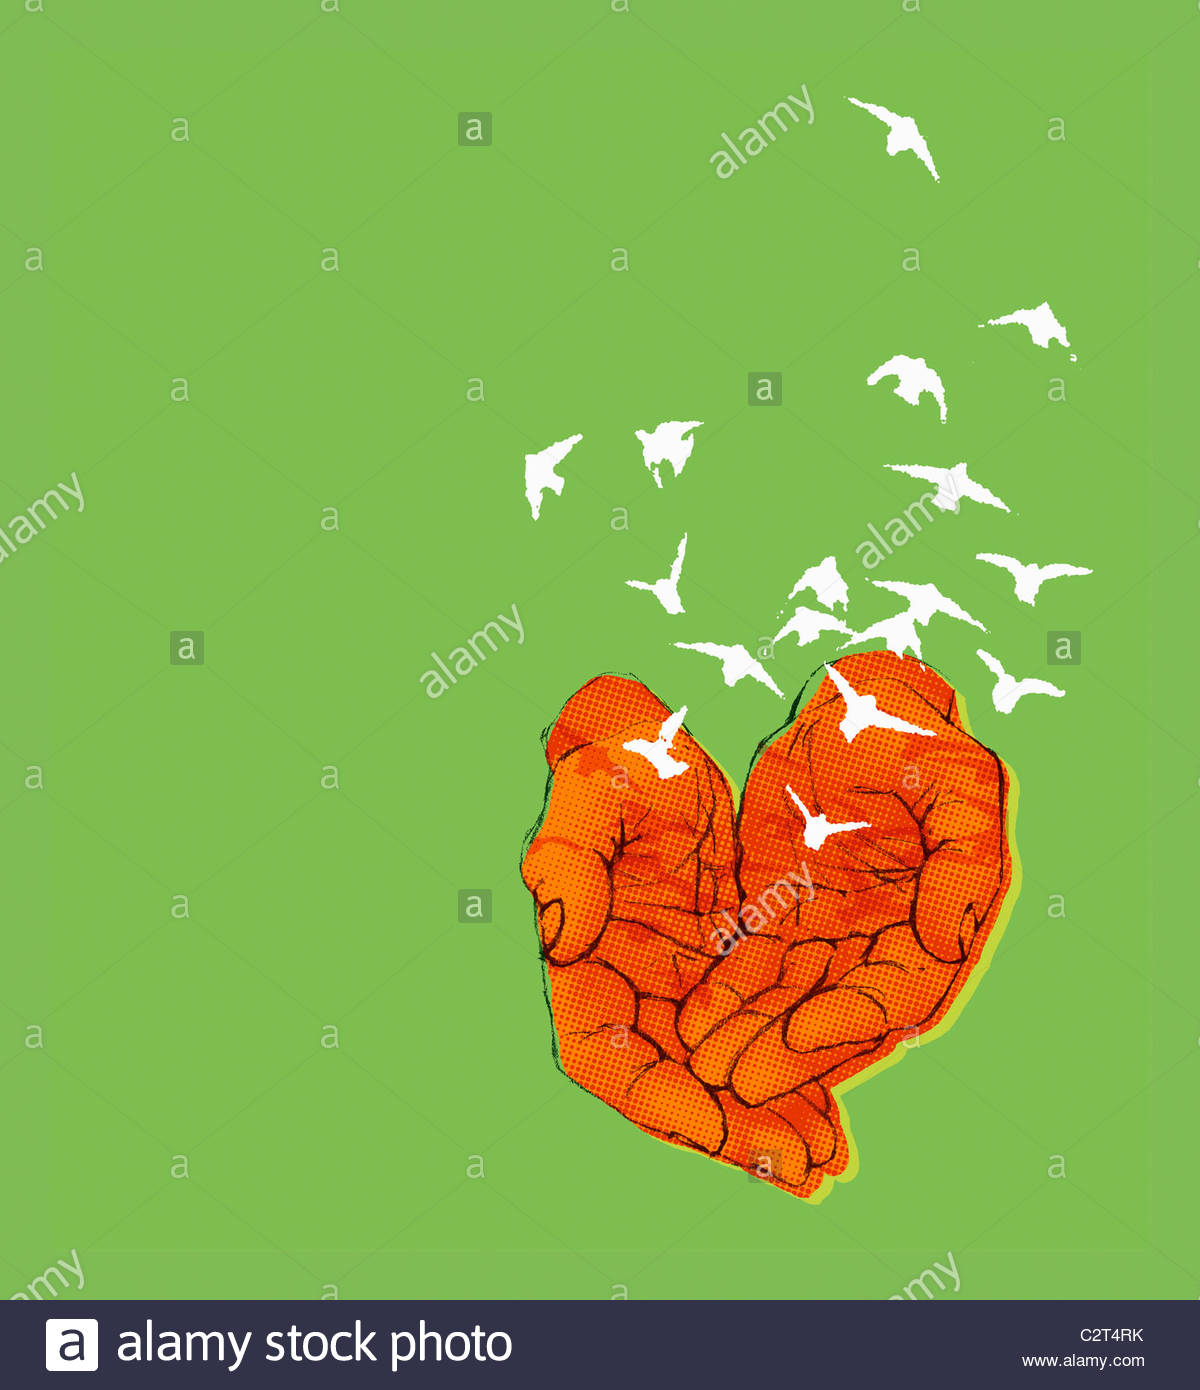 Hands releasing flock of birds - Stock Image